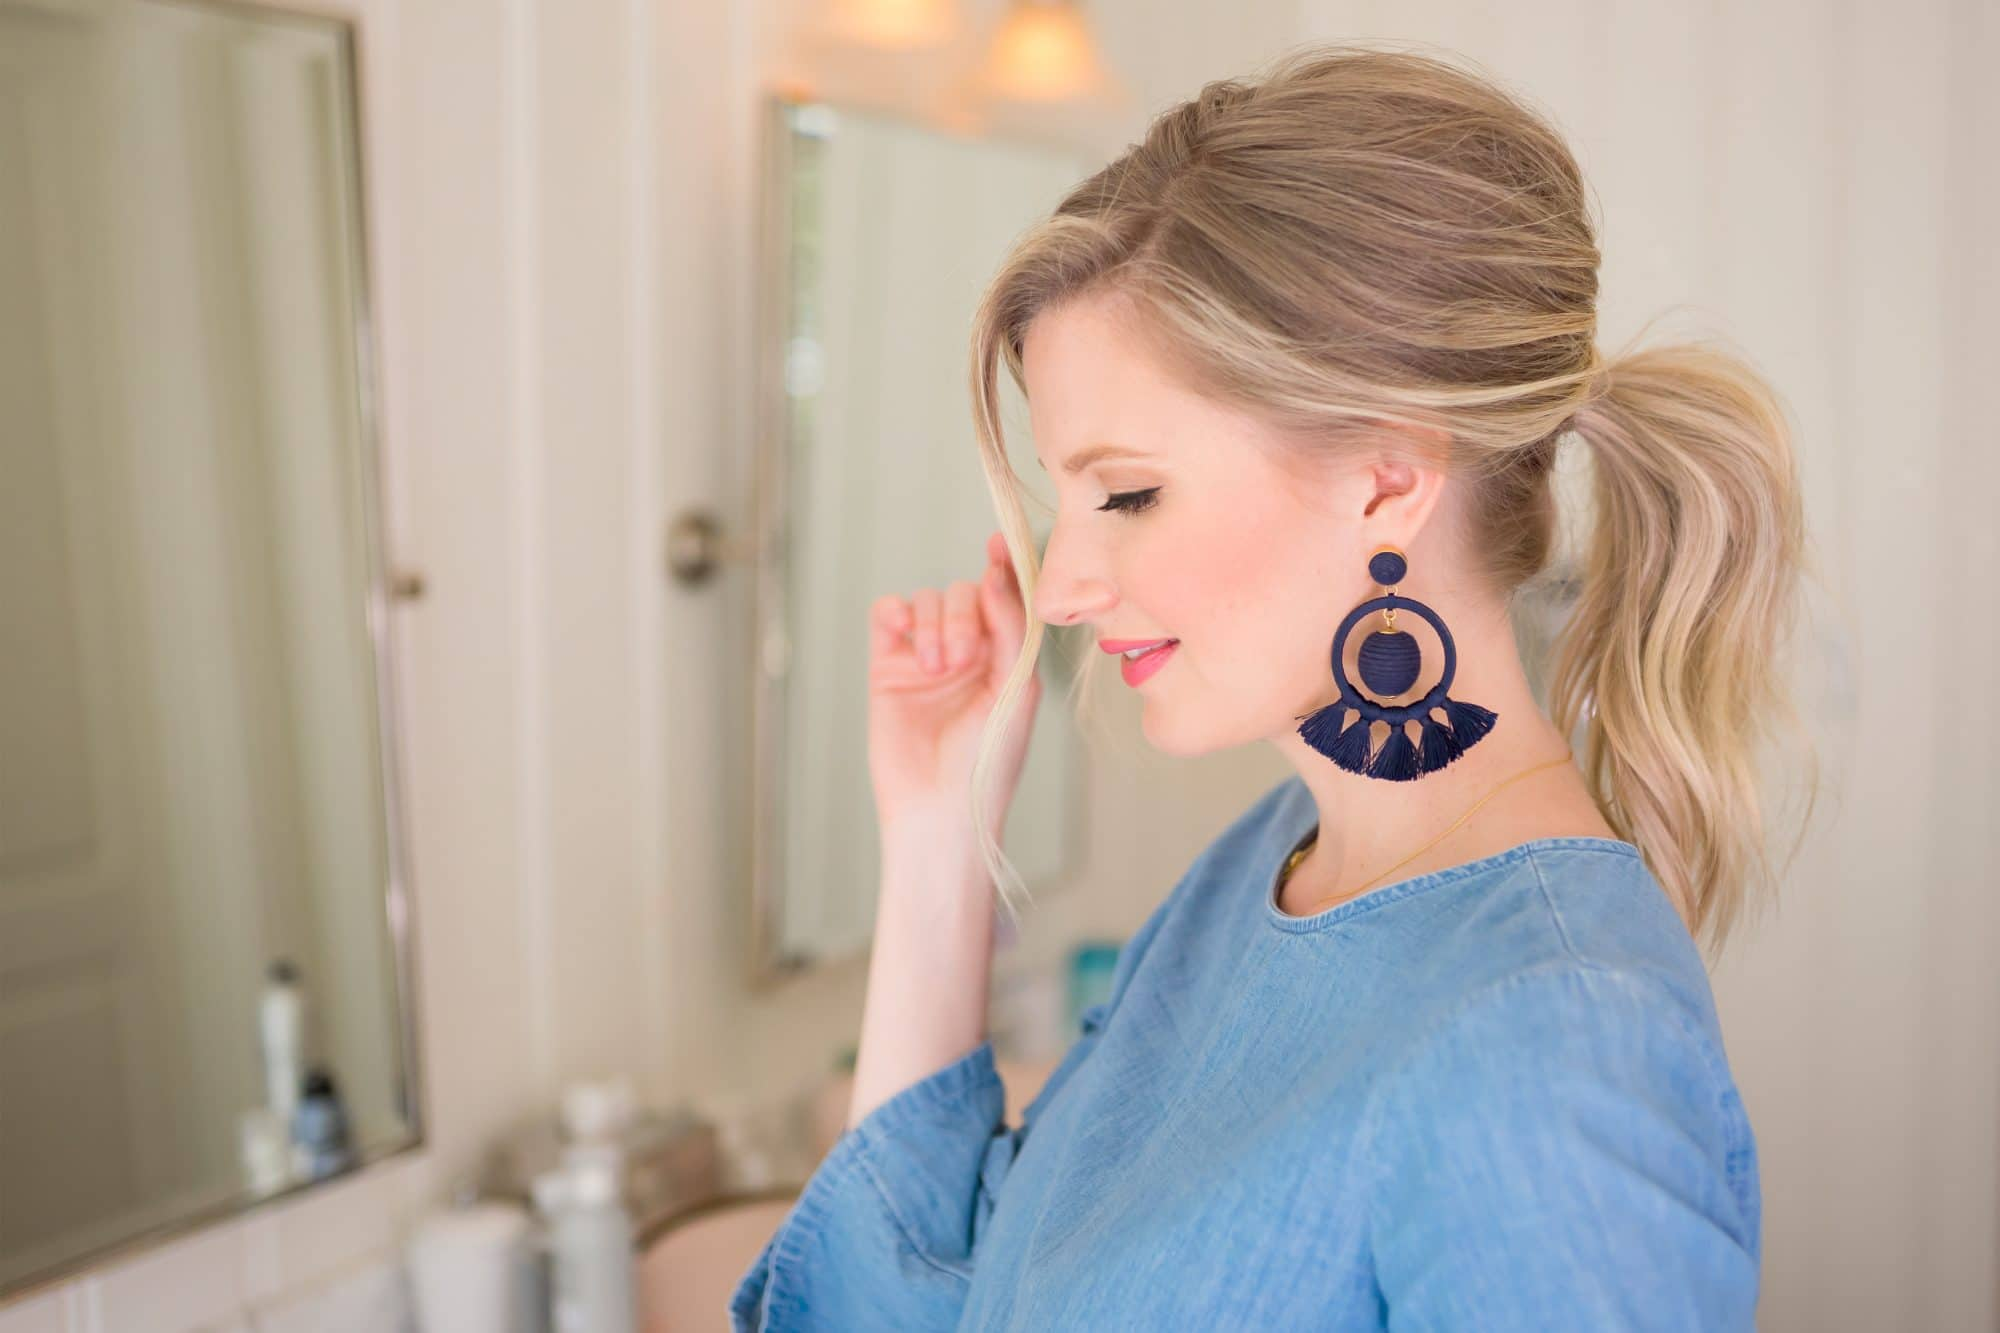 Easy Volumized Ponytail Tutorial with Kate from The Small Things Blog | www.ashleybrookedesigns.com